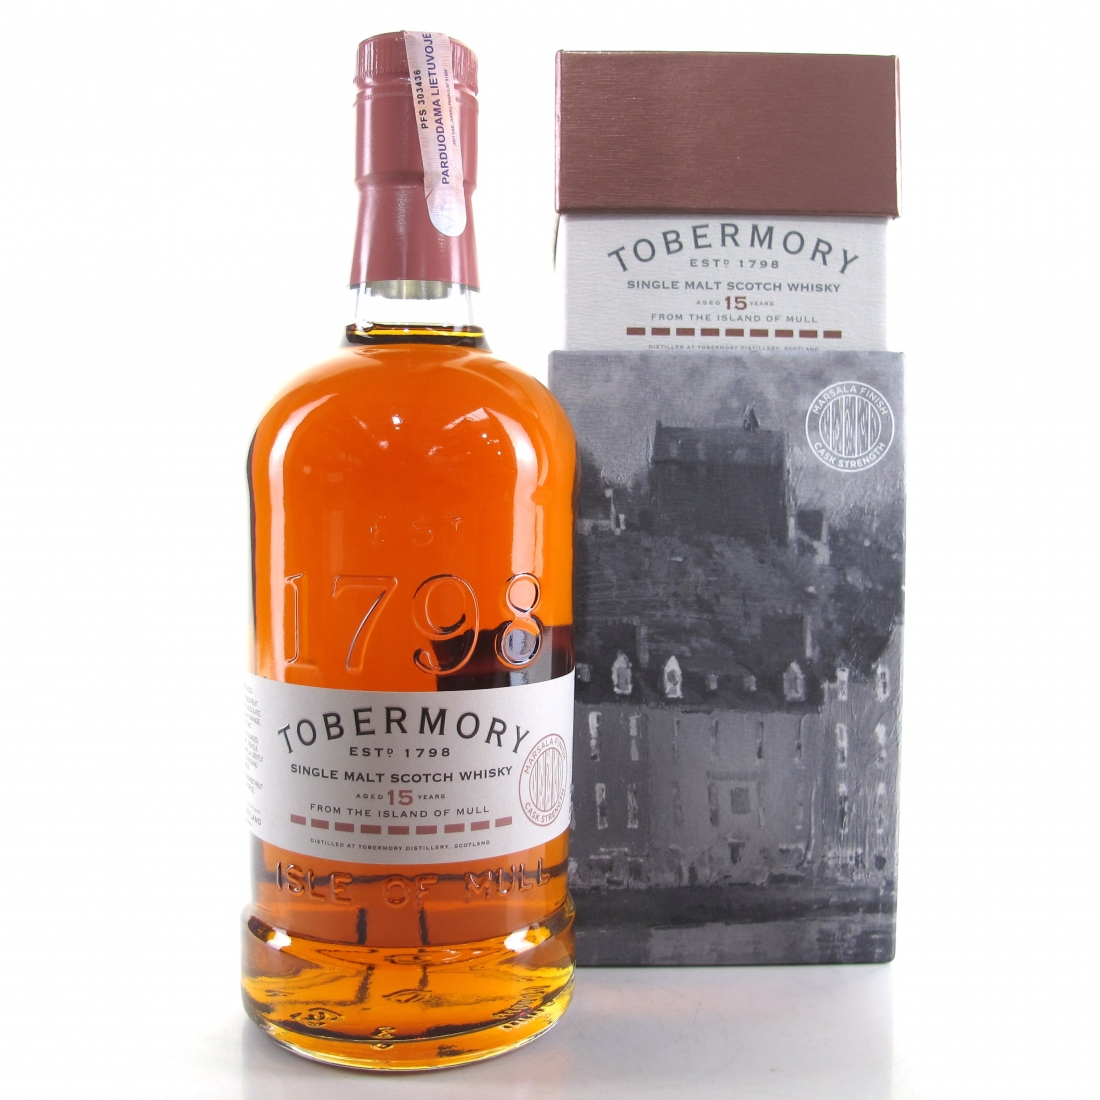 Tobermory 15 Year Old Marsala Finish